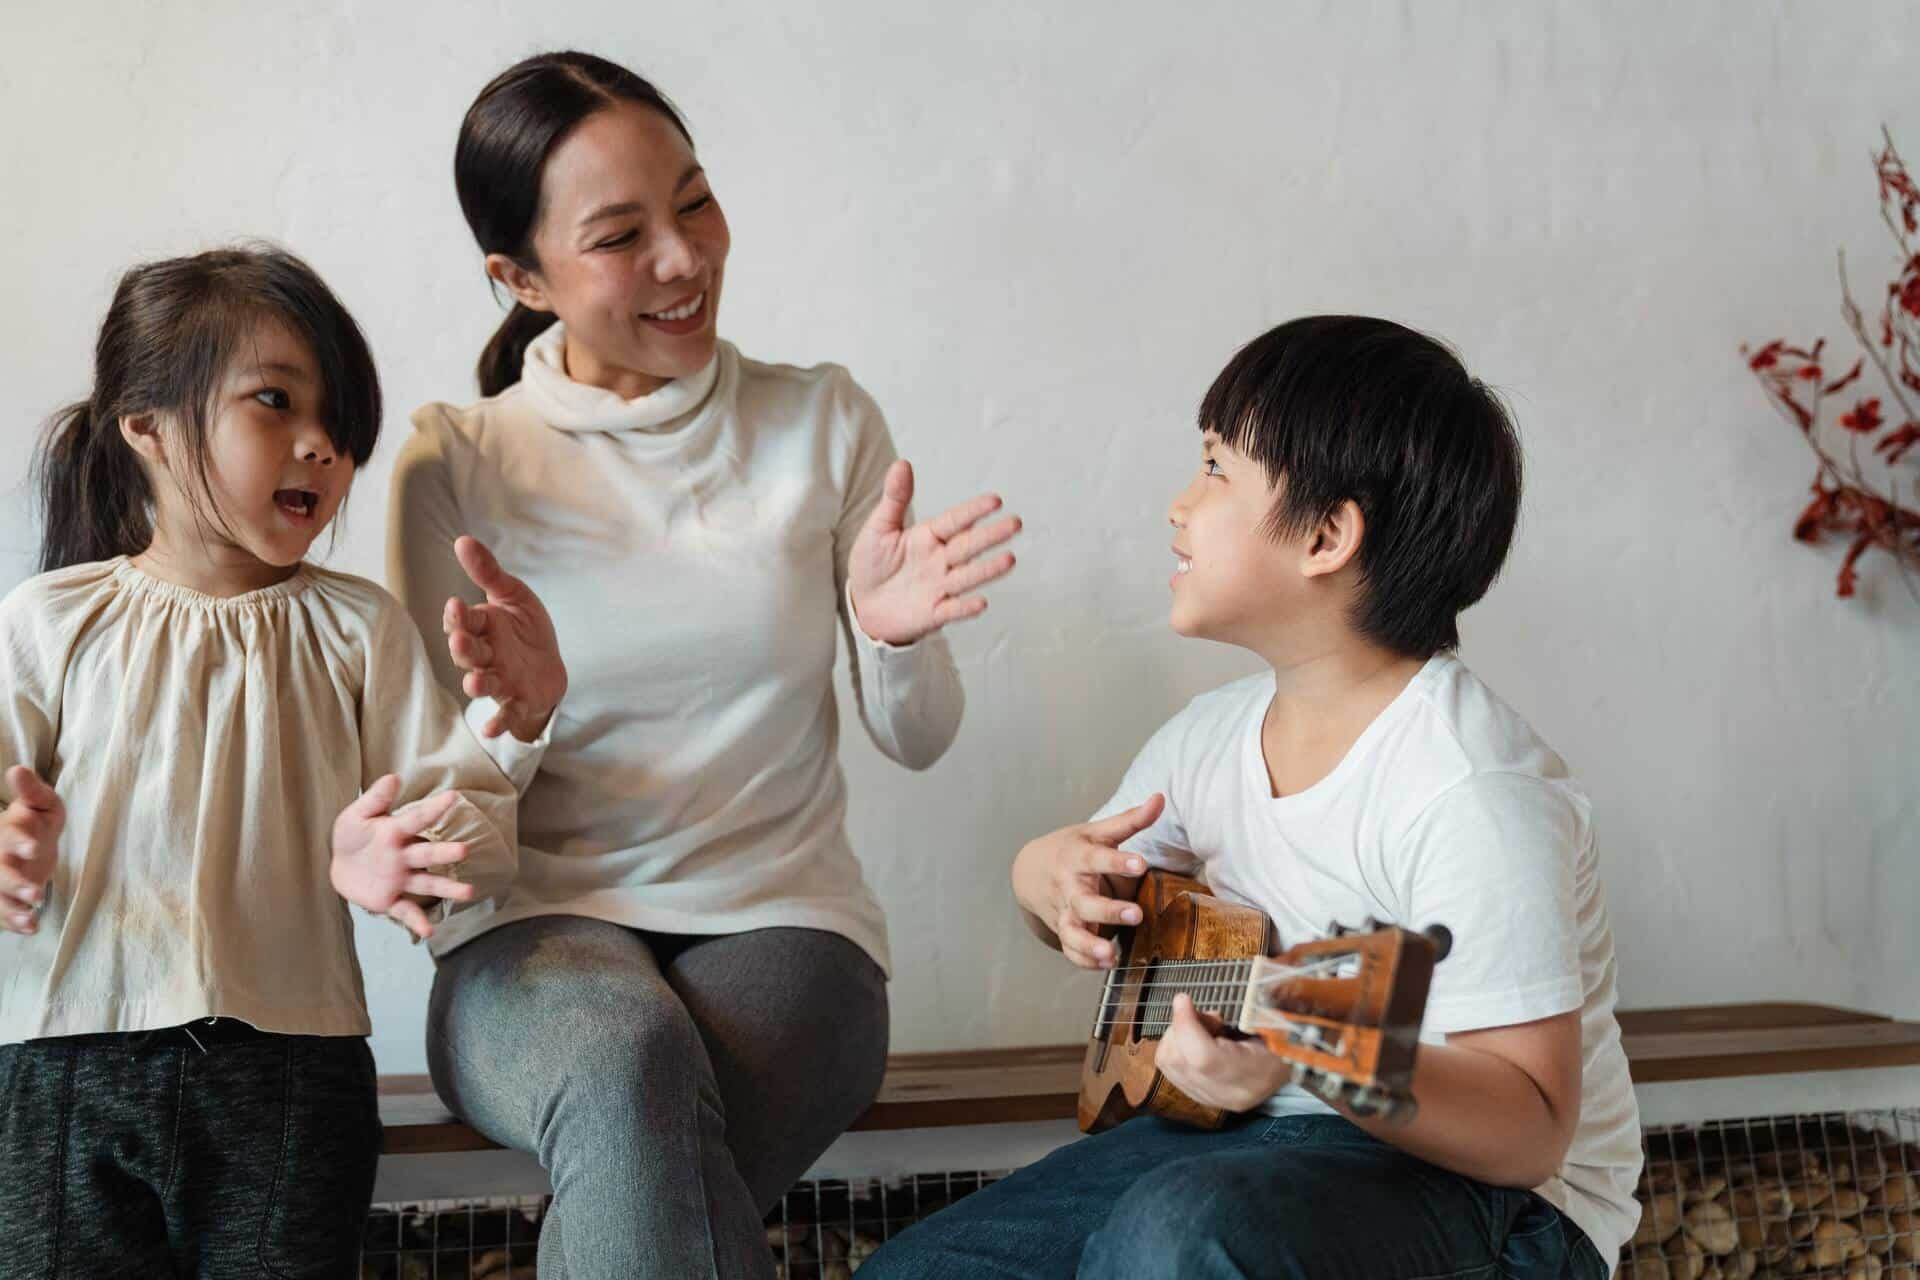 ethnic-boy-playing-ukulele-for-cheerful-sibling-and-mother-4473436